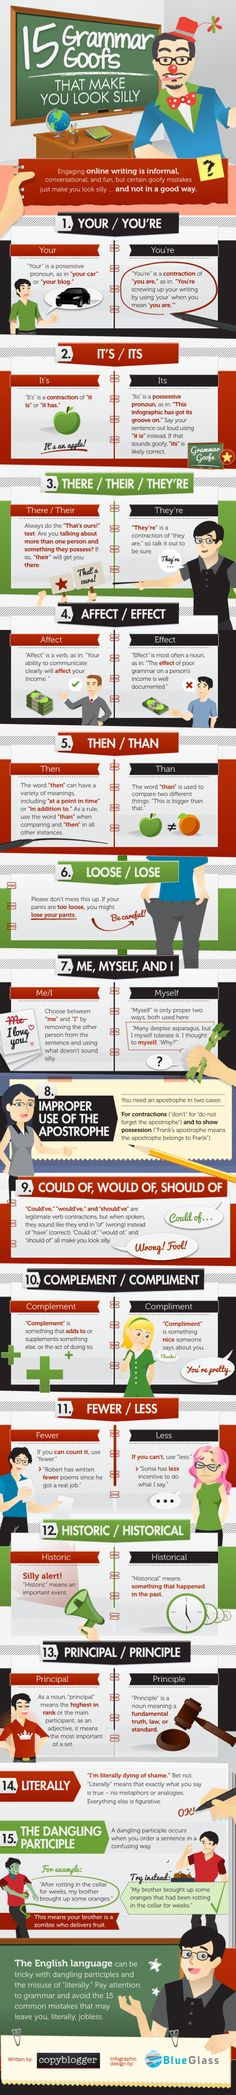 Writers Write - 15 common grammar mistakes